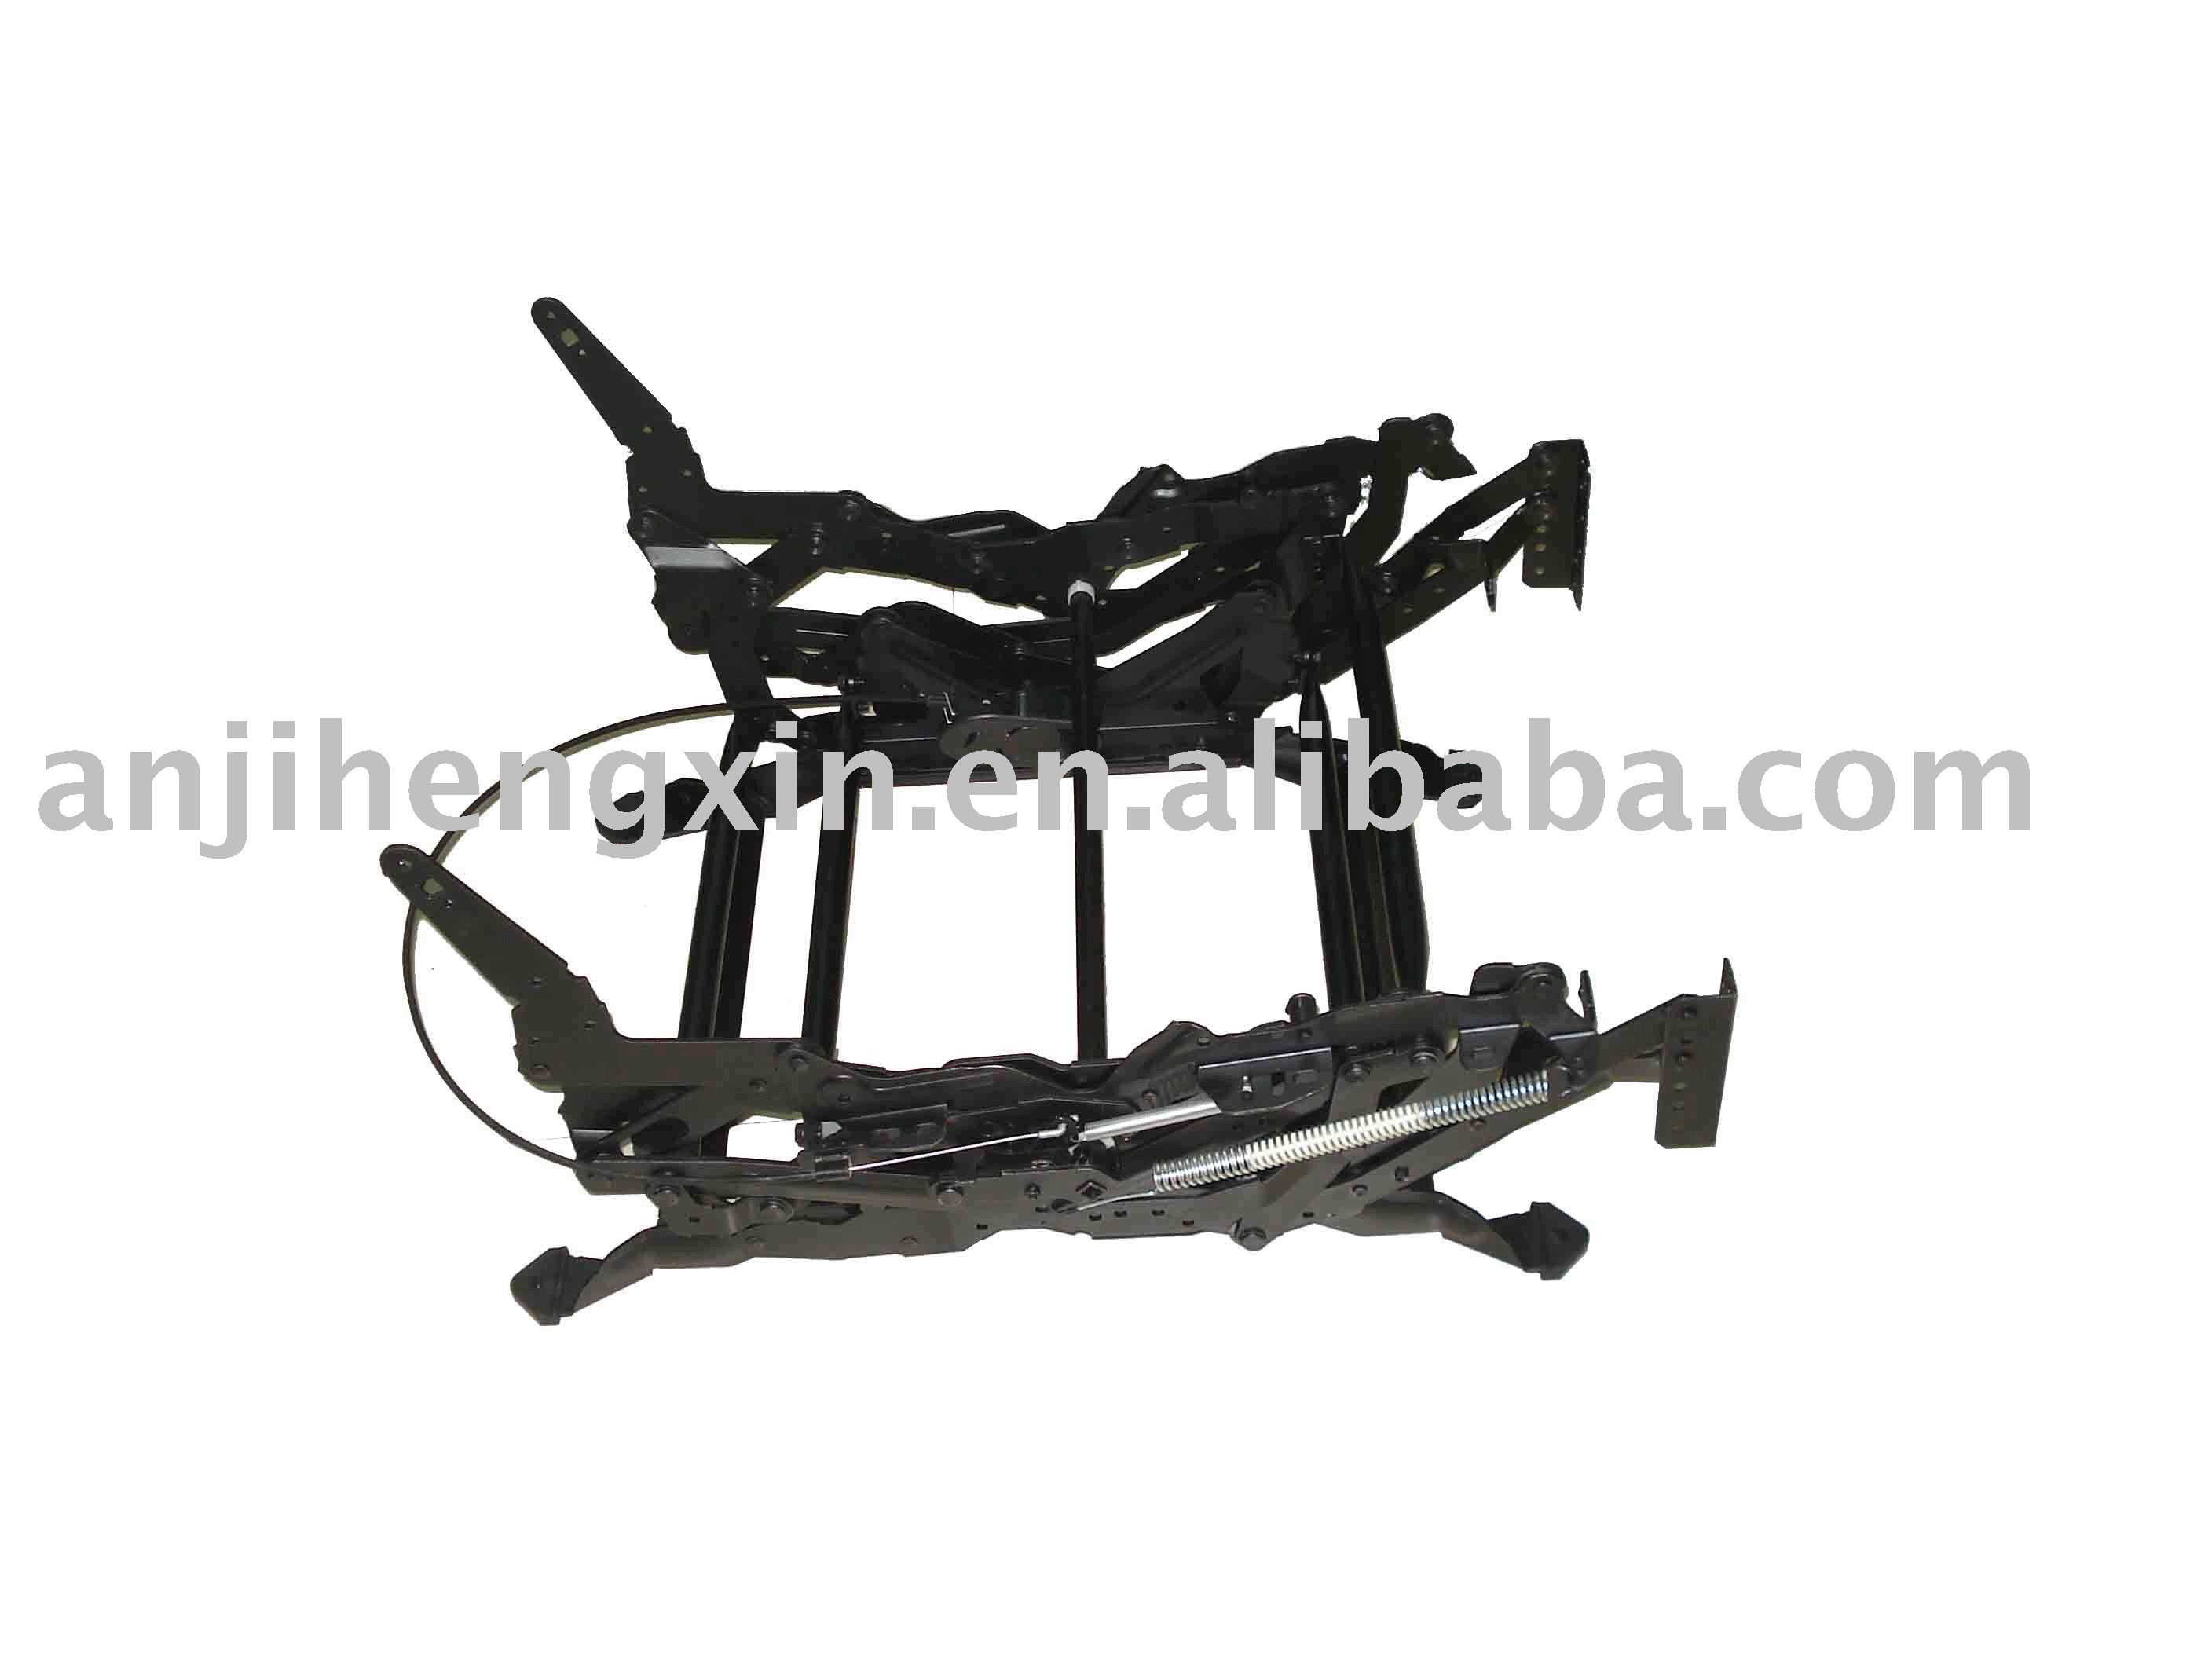 Gliding chair mechanism - Glider Chair Mechanism Glider Chair Mechanism Suppliers And Manufacturers At Alibaba Com